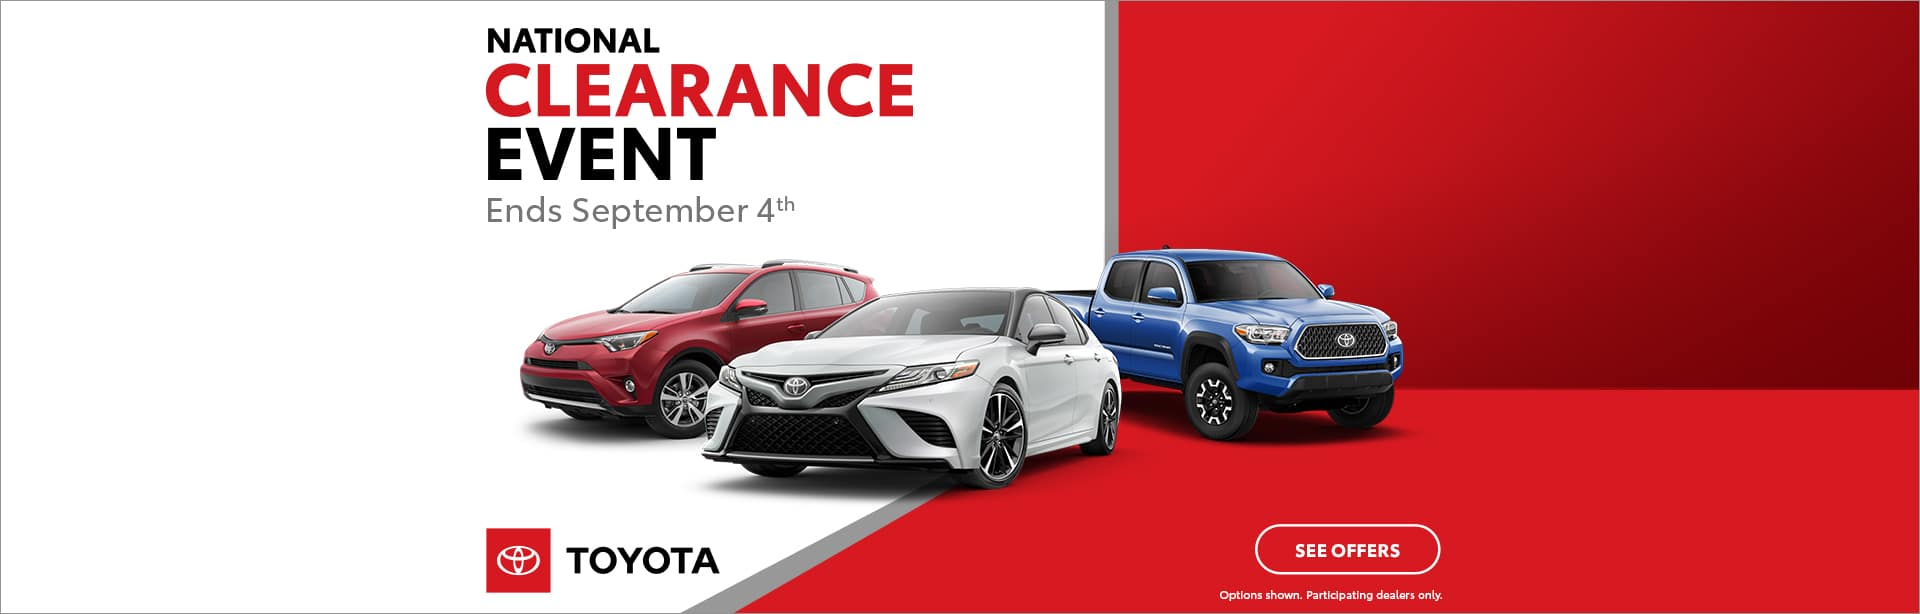 National Clearance Event Cain Toyota North Canton Ohio